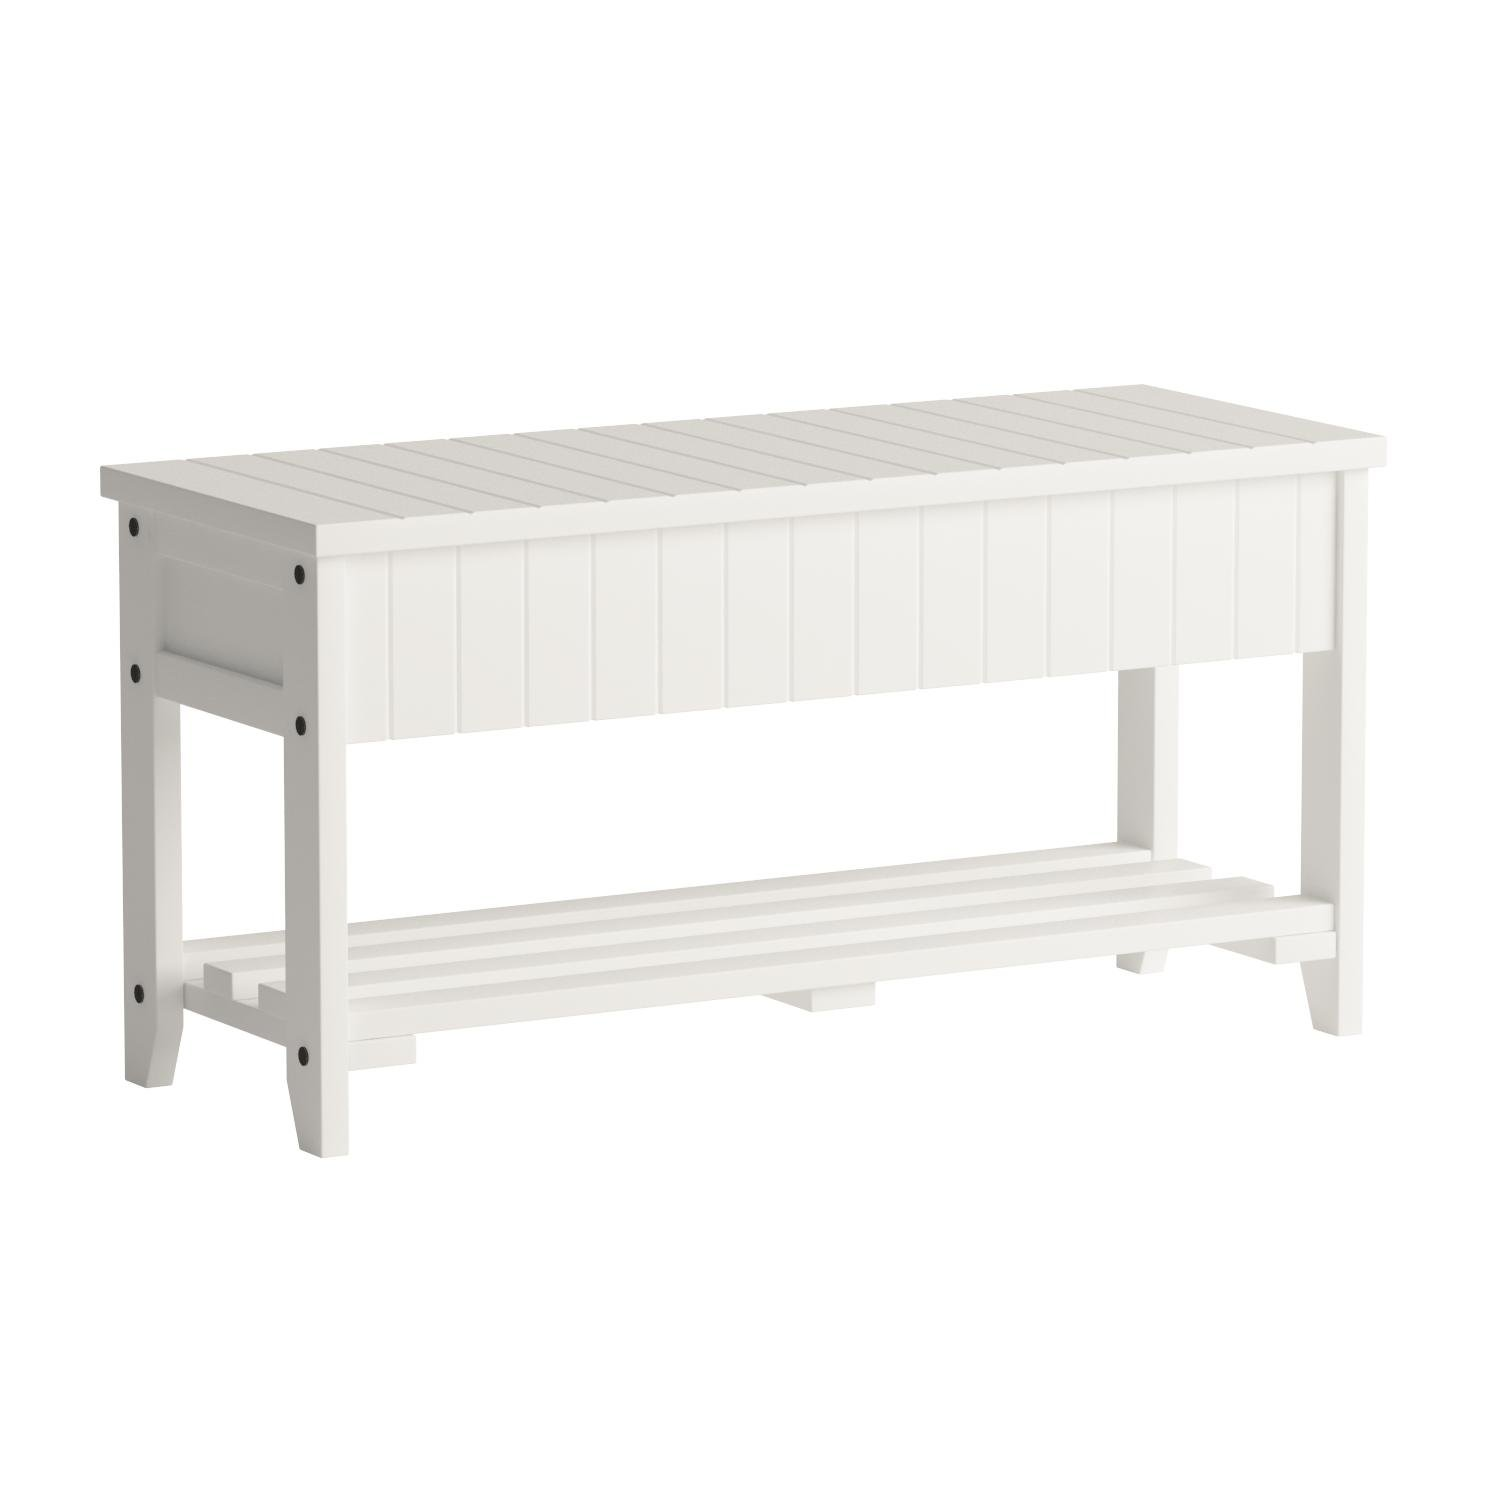 Roundhill Furniture Quality Solid Wood Shoe Bench with Storage, White by Roundhill Furniture